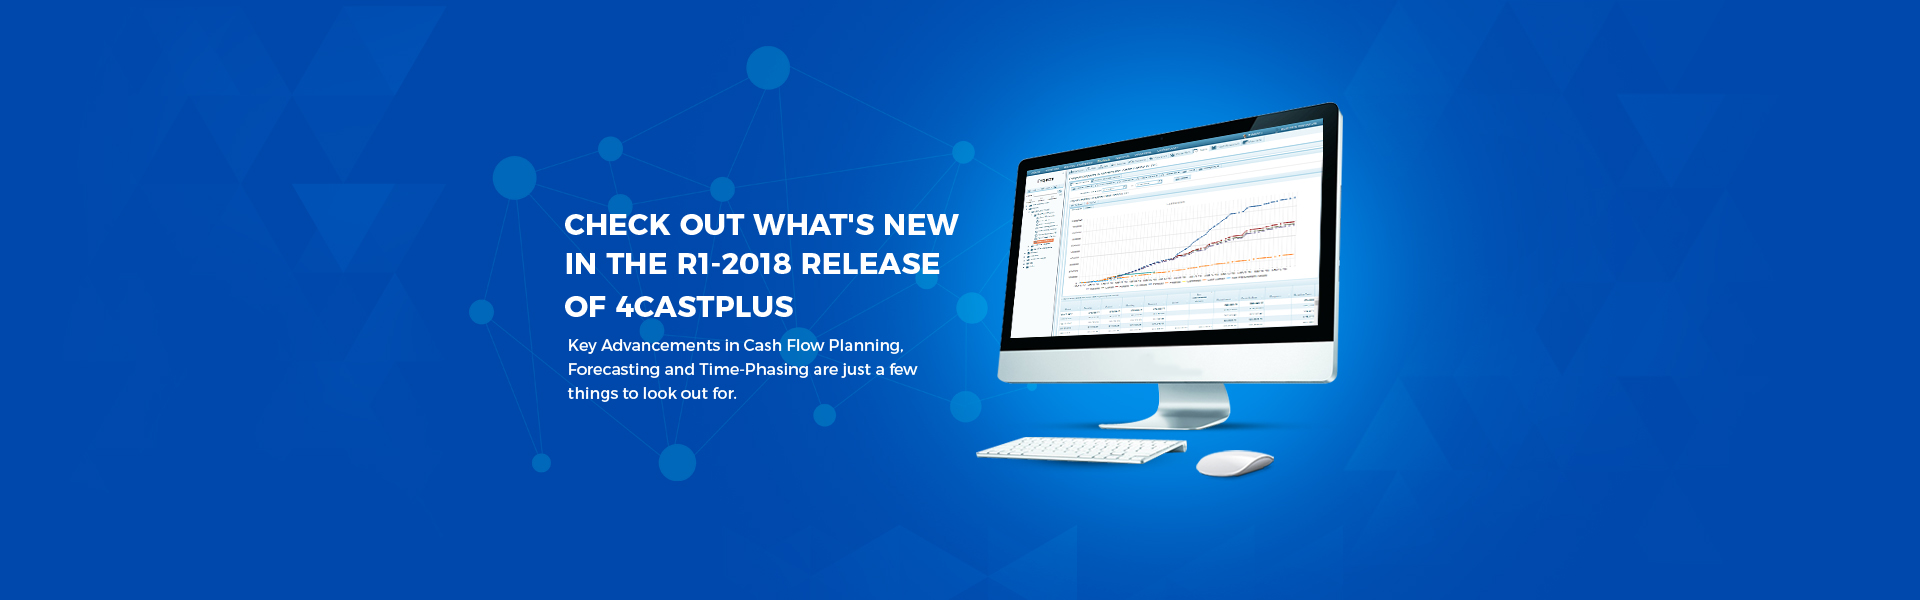 4castplus product upgrades